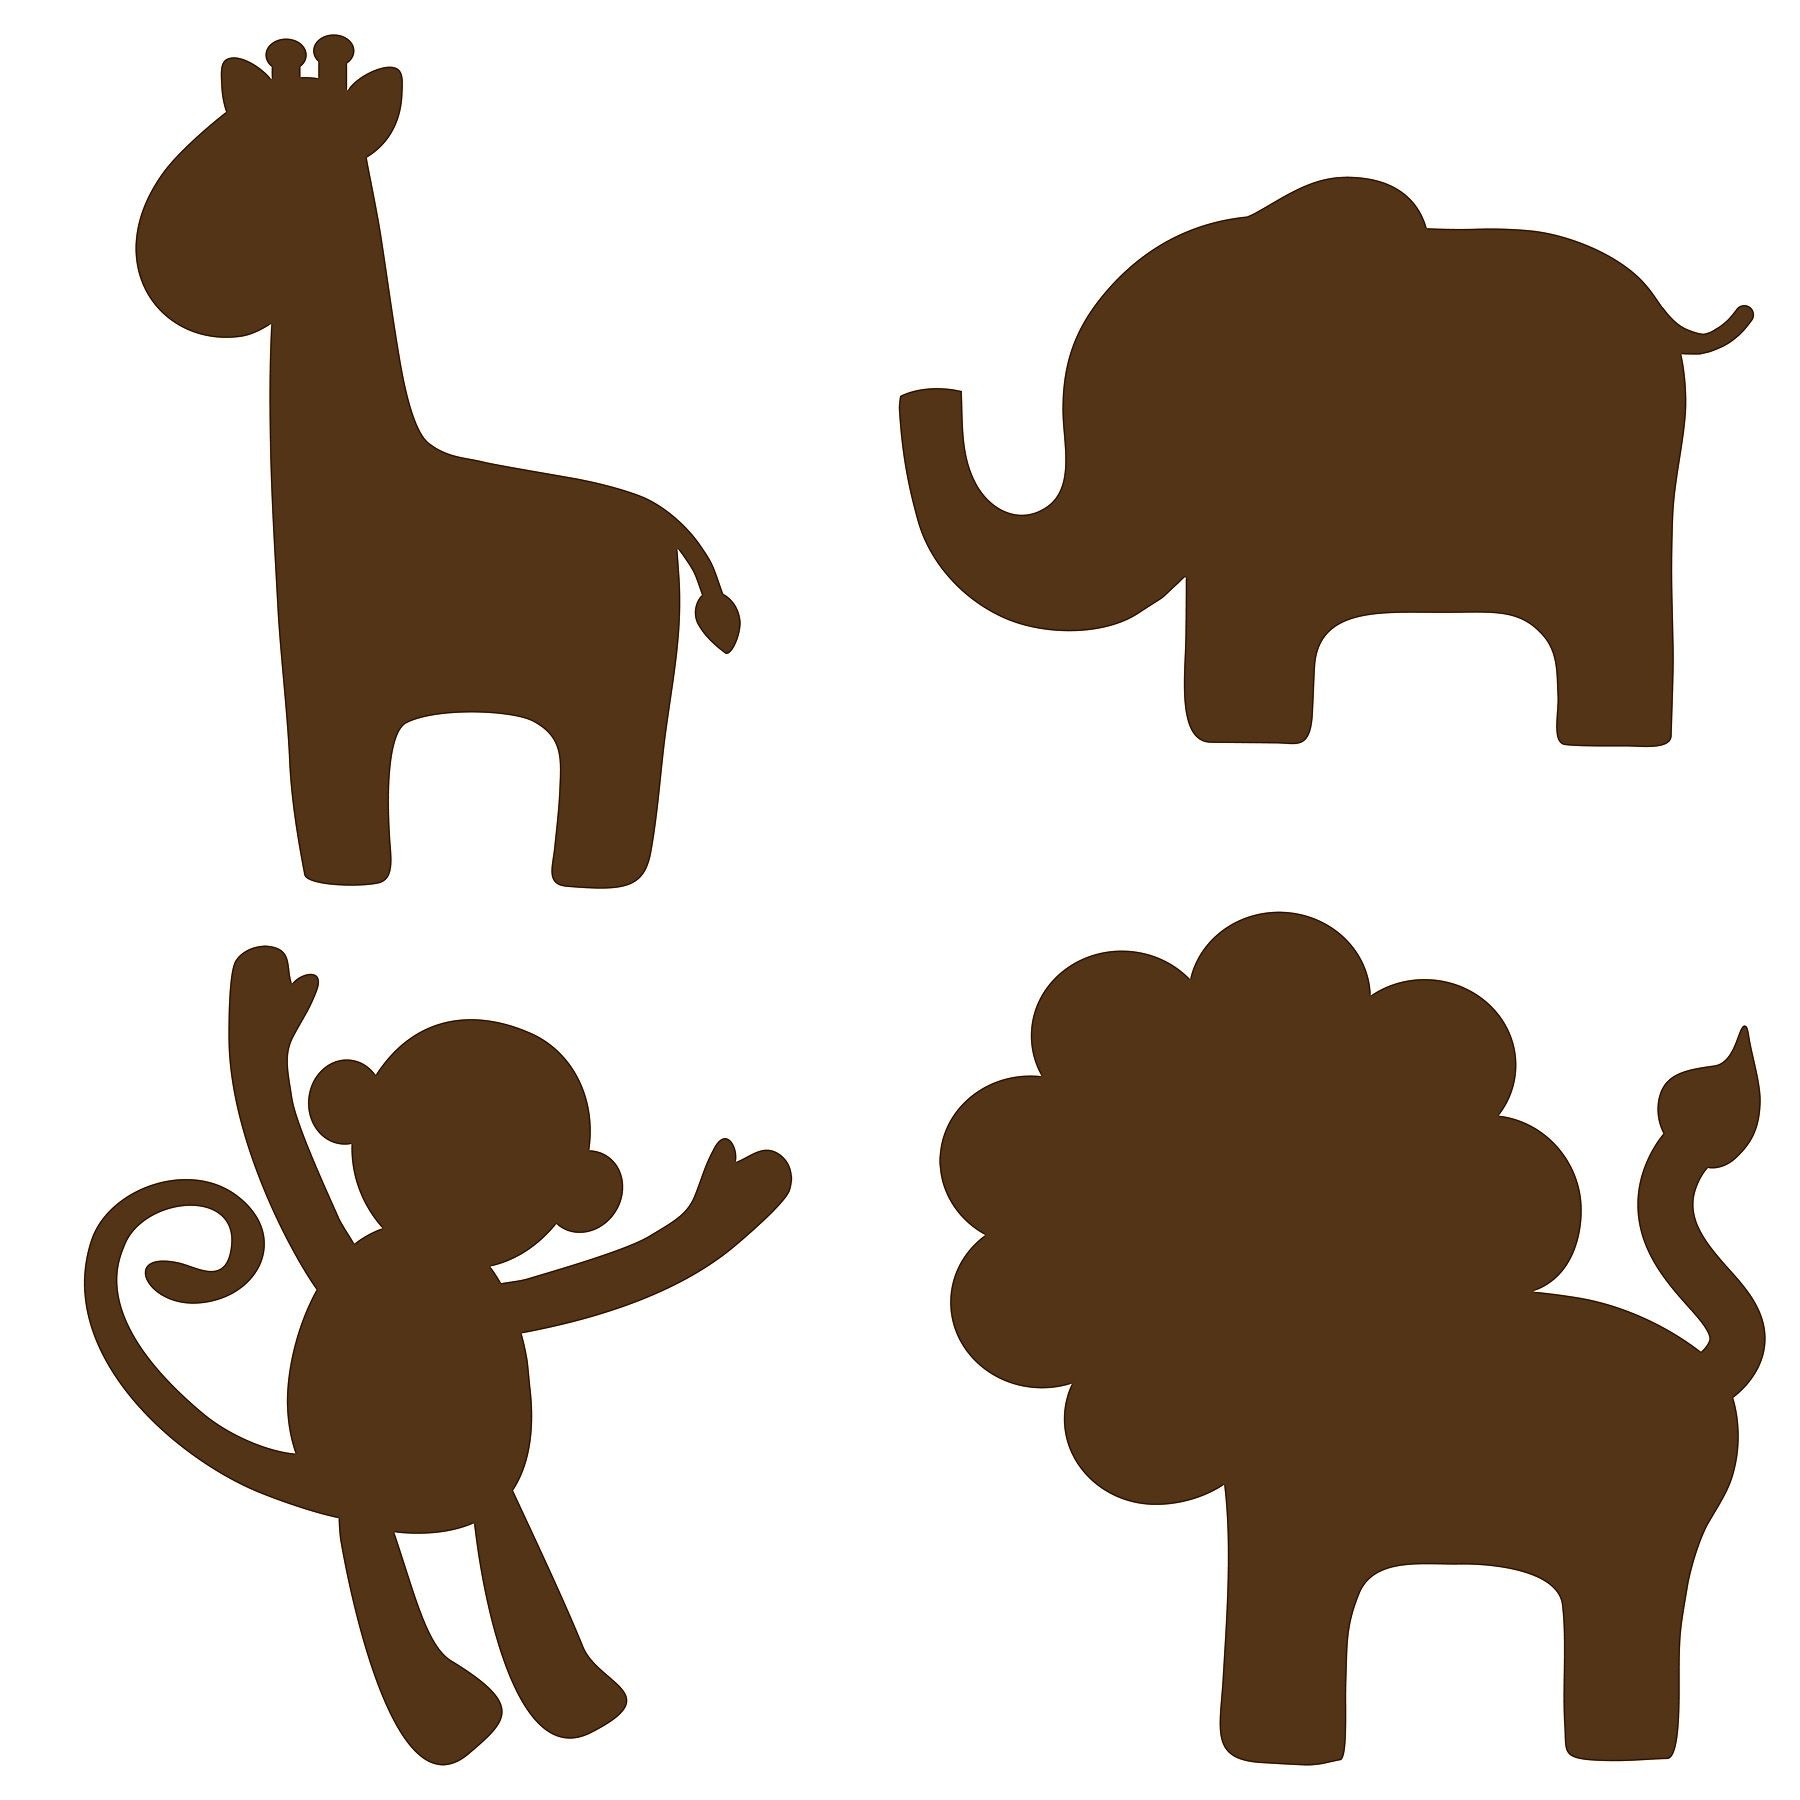 elephant clip art silhouette at getdrawings com free for personal rh getdrawings com elephant clipart elephant clipart free